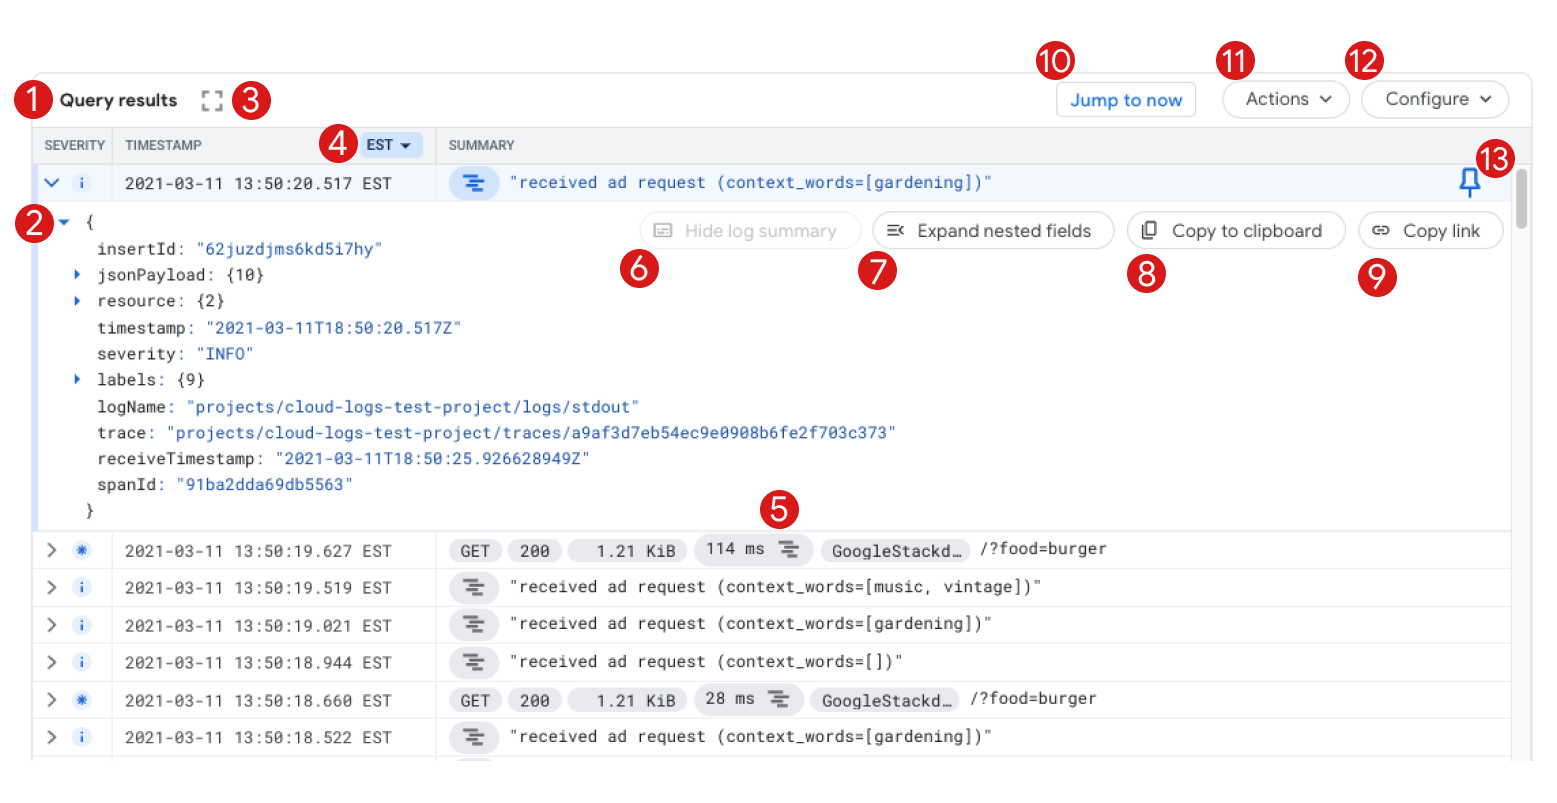 Query results pane